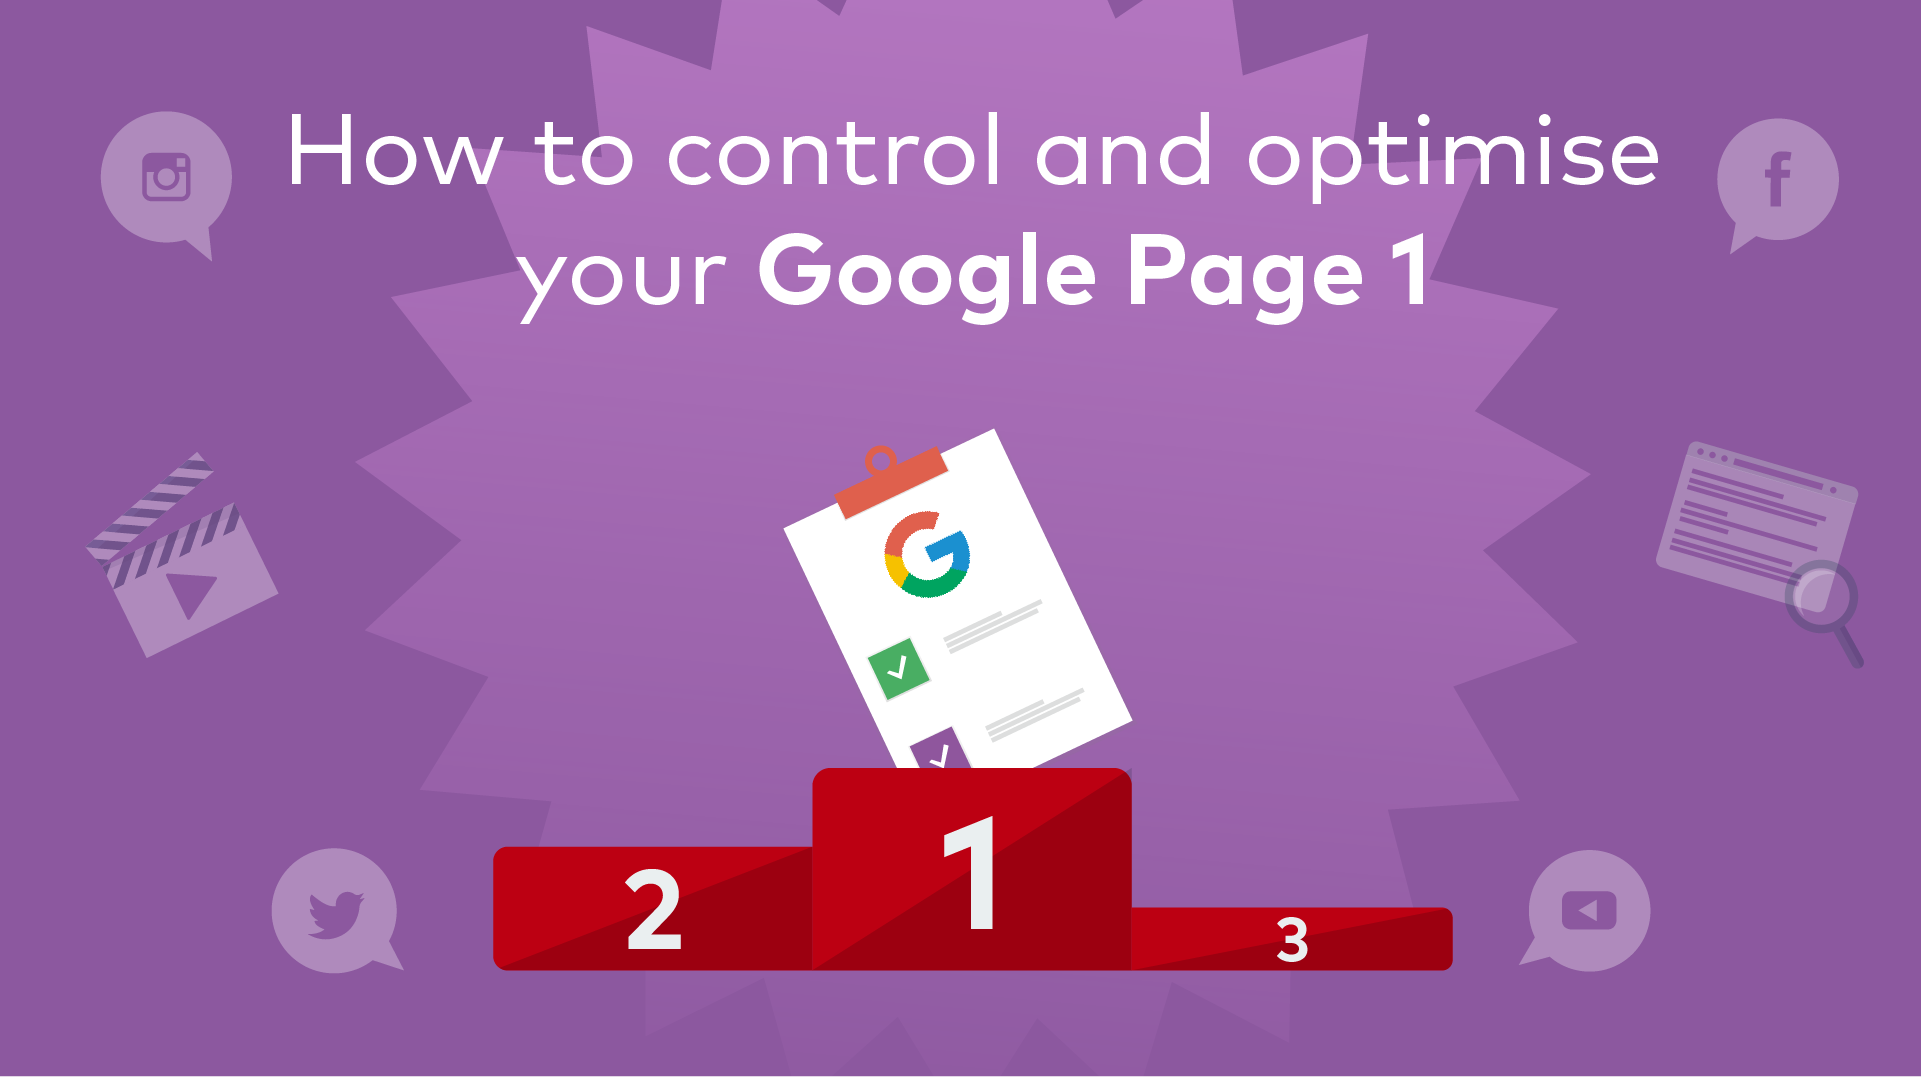 Cover image for post: How to Control and Optimise Your Company's Google Page 1